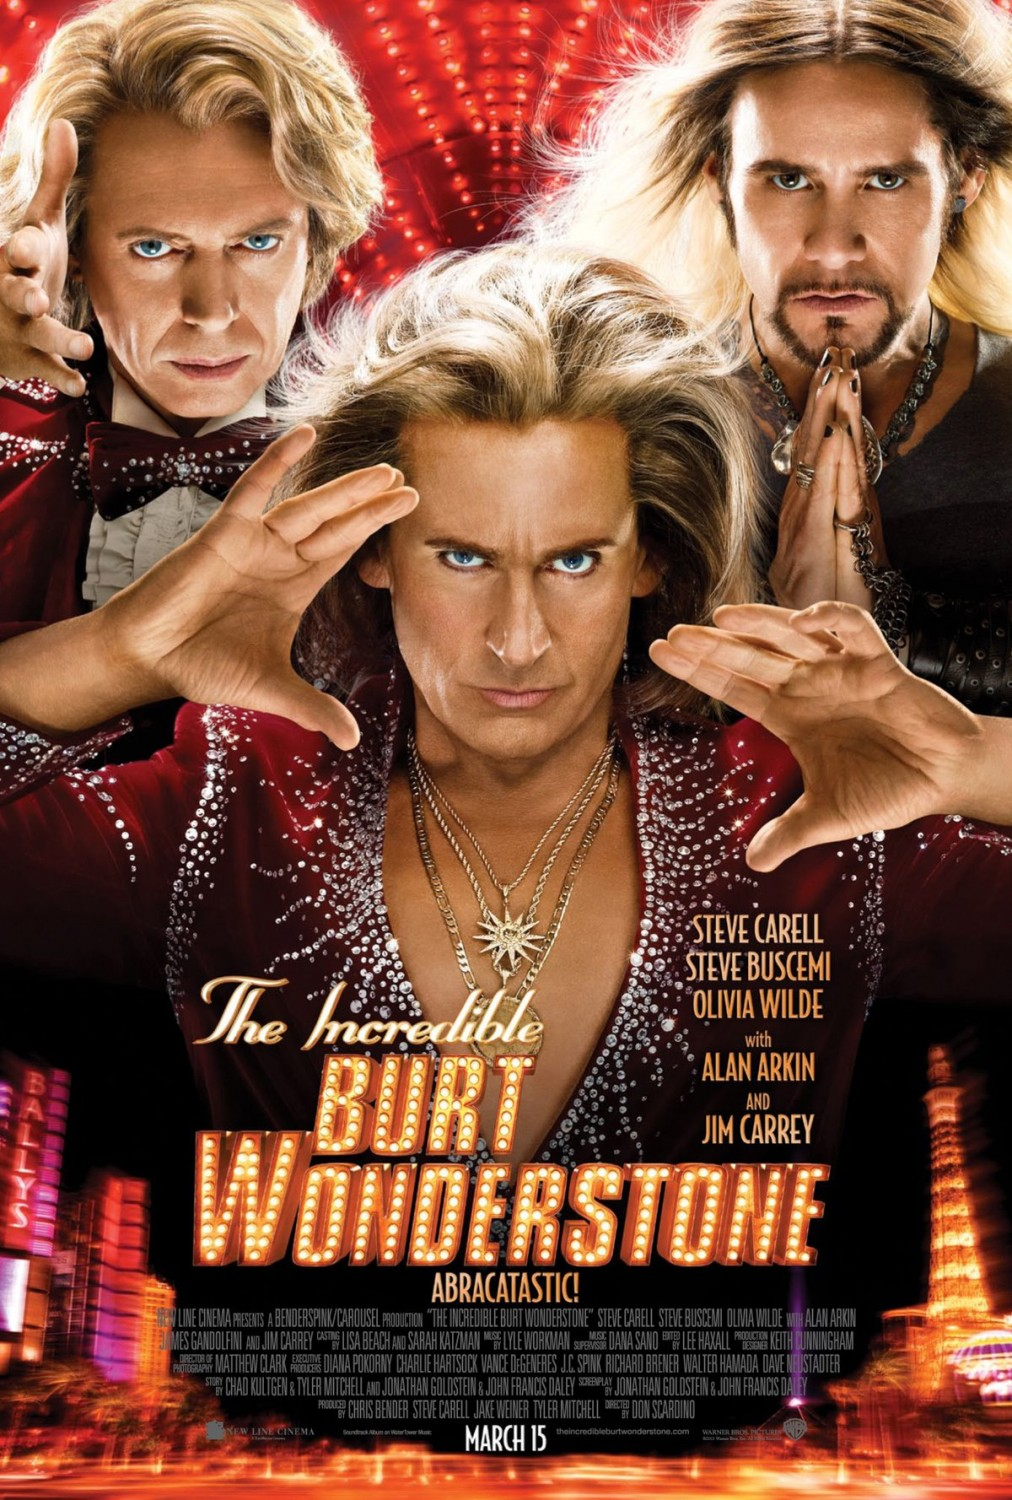 The-Incredible-Burt-Wonderstone-Poster